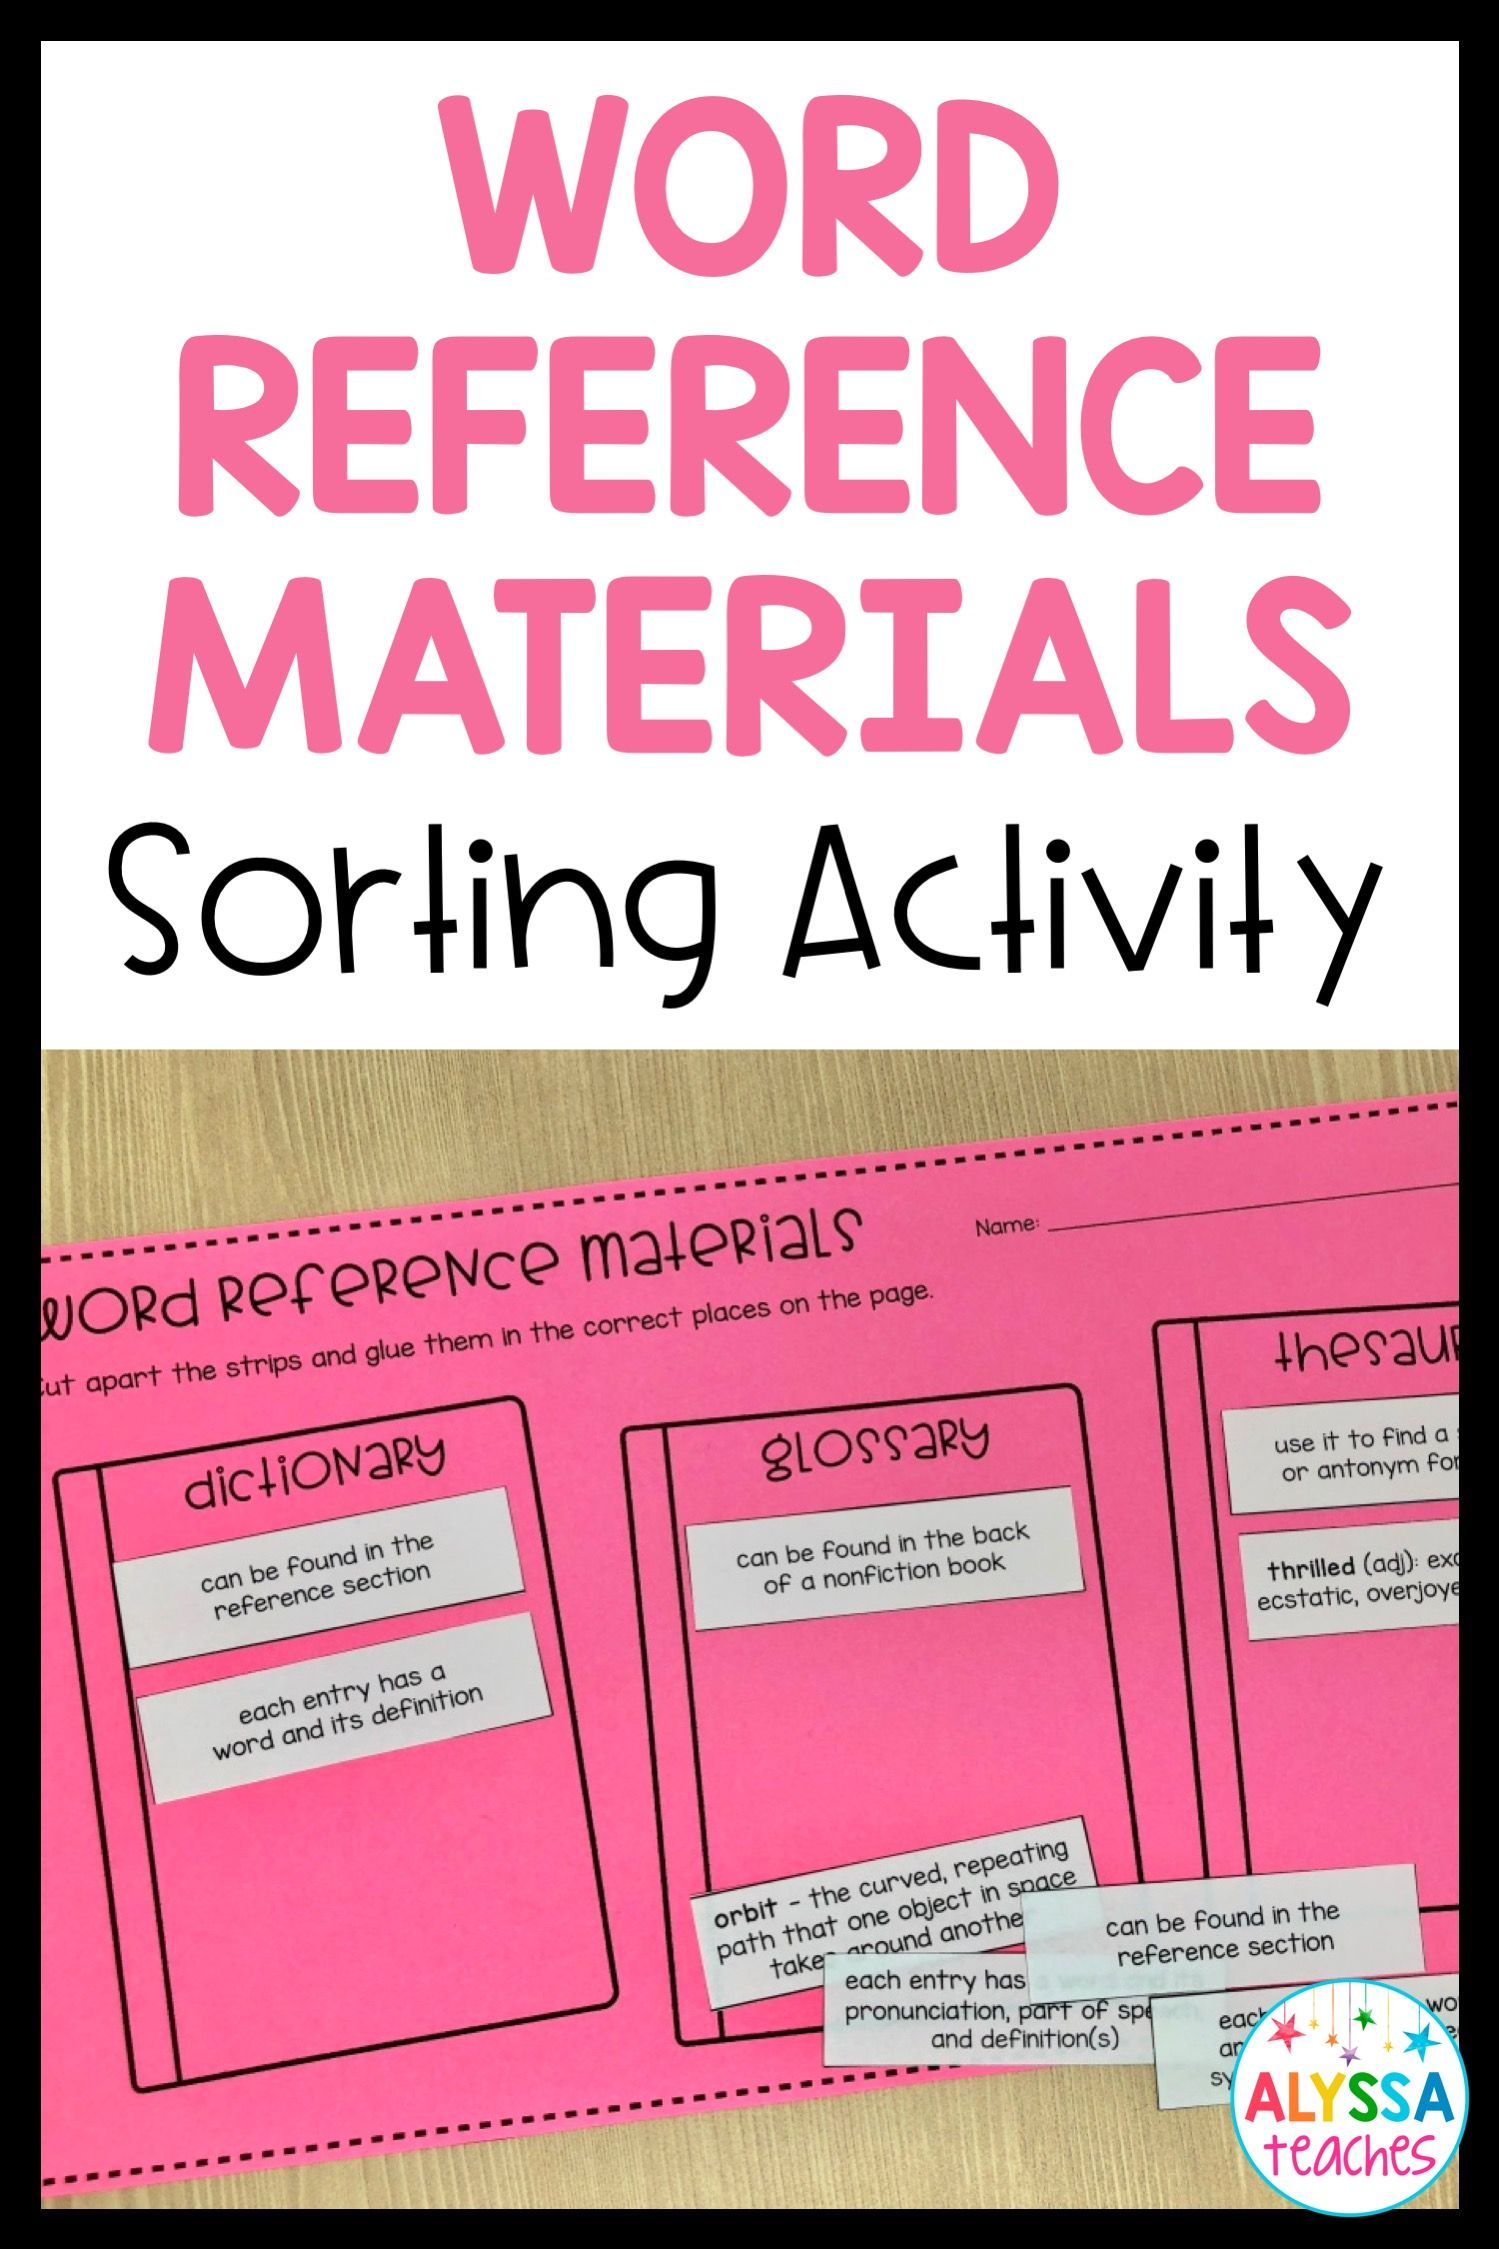 Word Reference Materials Sort